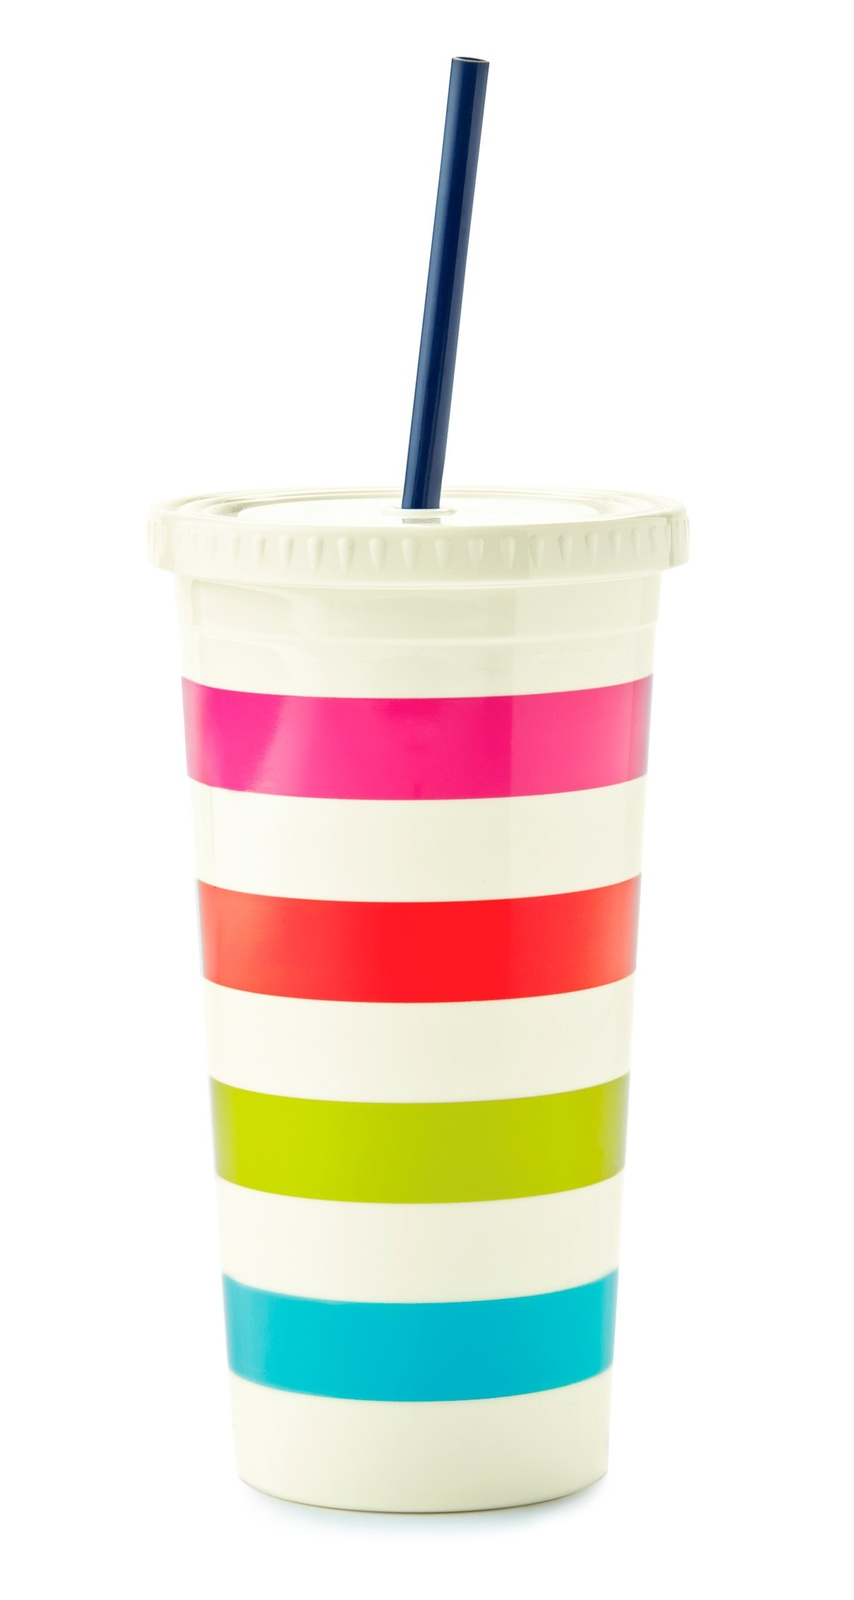 Kate Spade: Candy Stripe Insulated Tumbler image